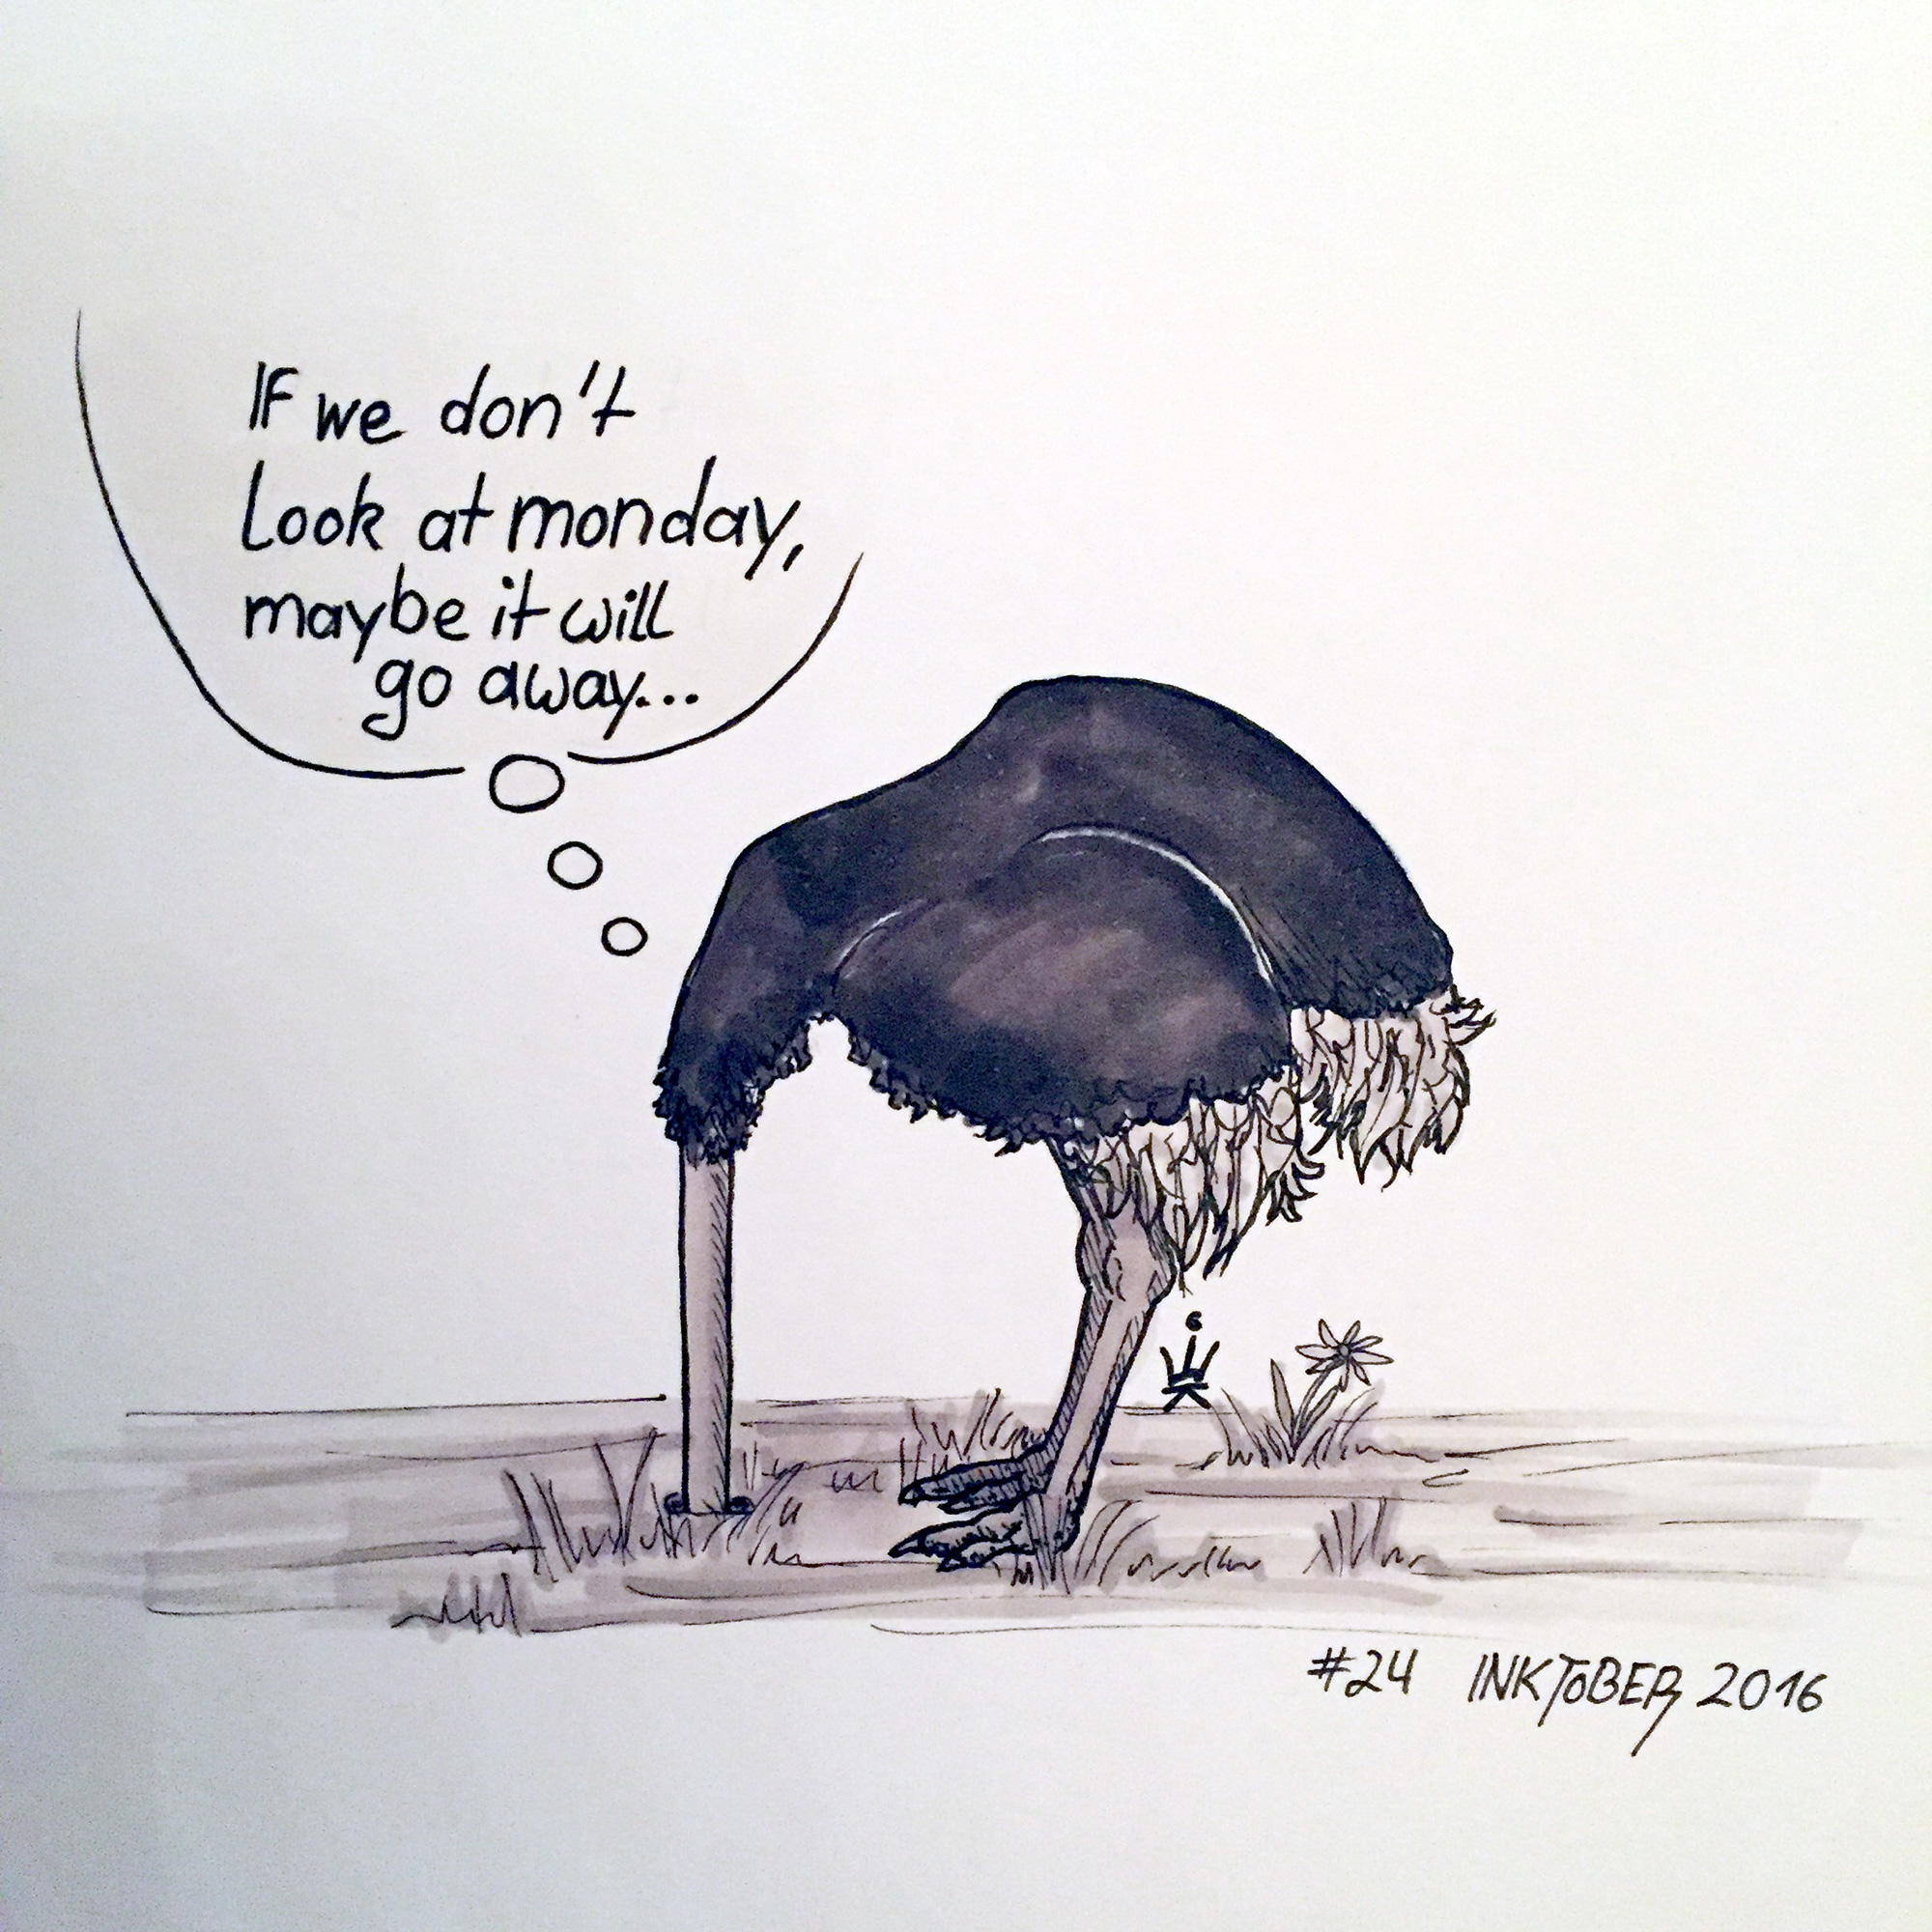 Inktober 2016 - 24: Don't look! (c) Esther Wagner